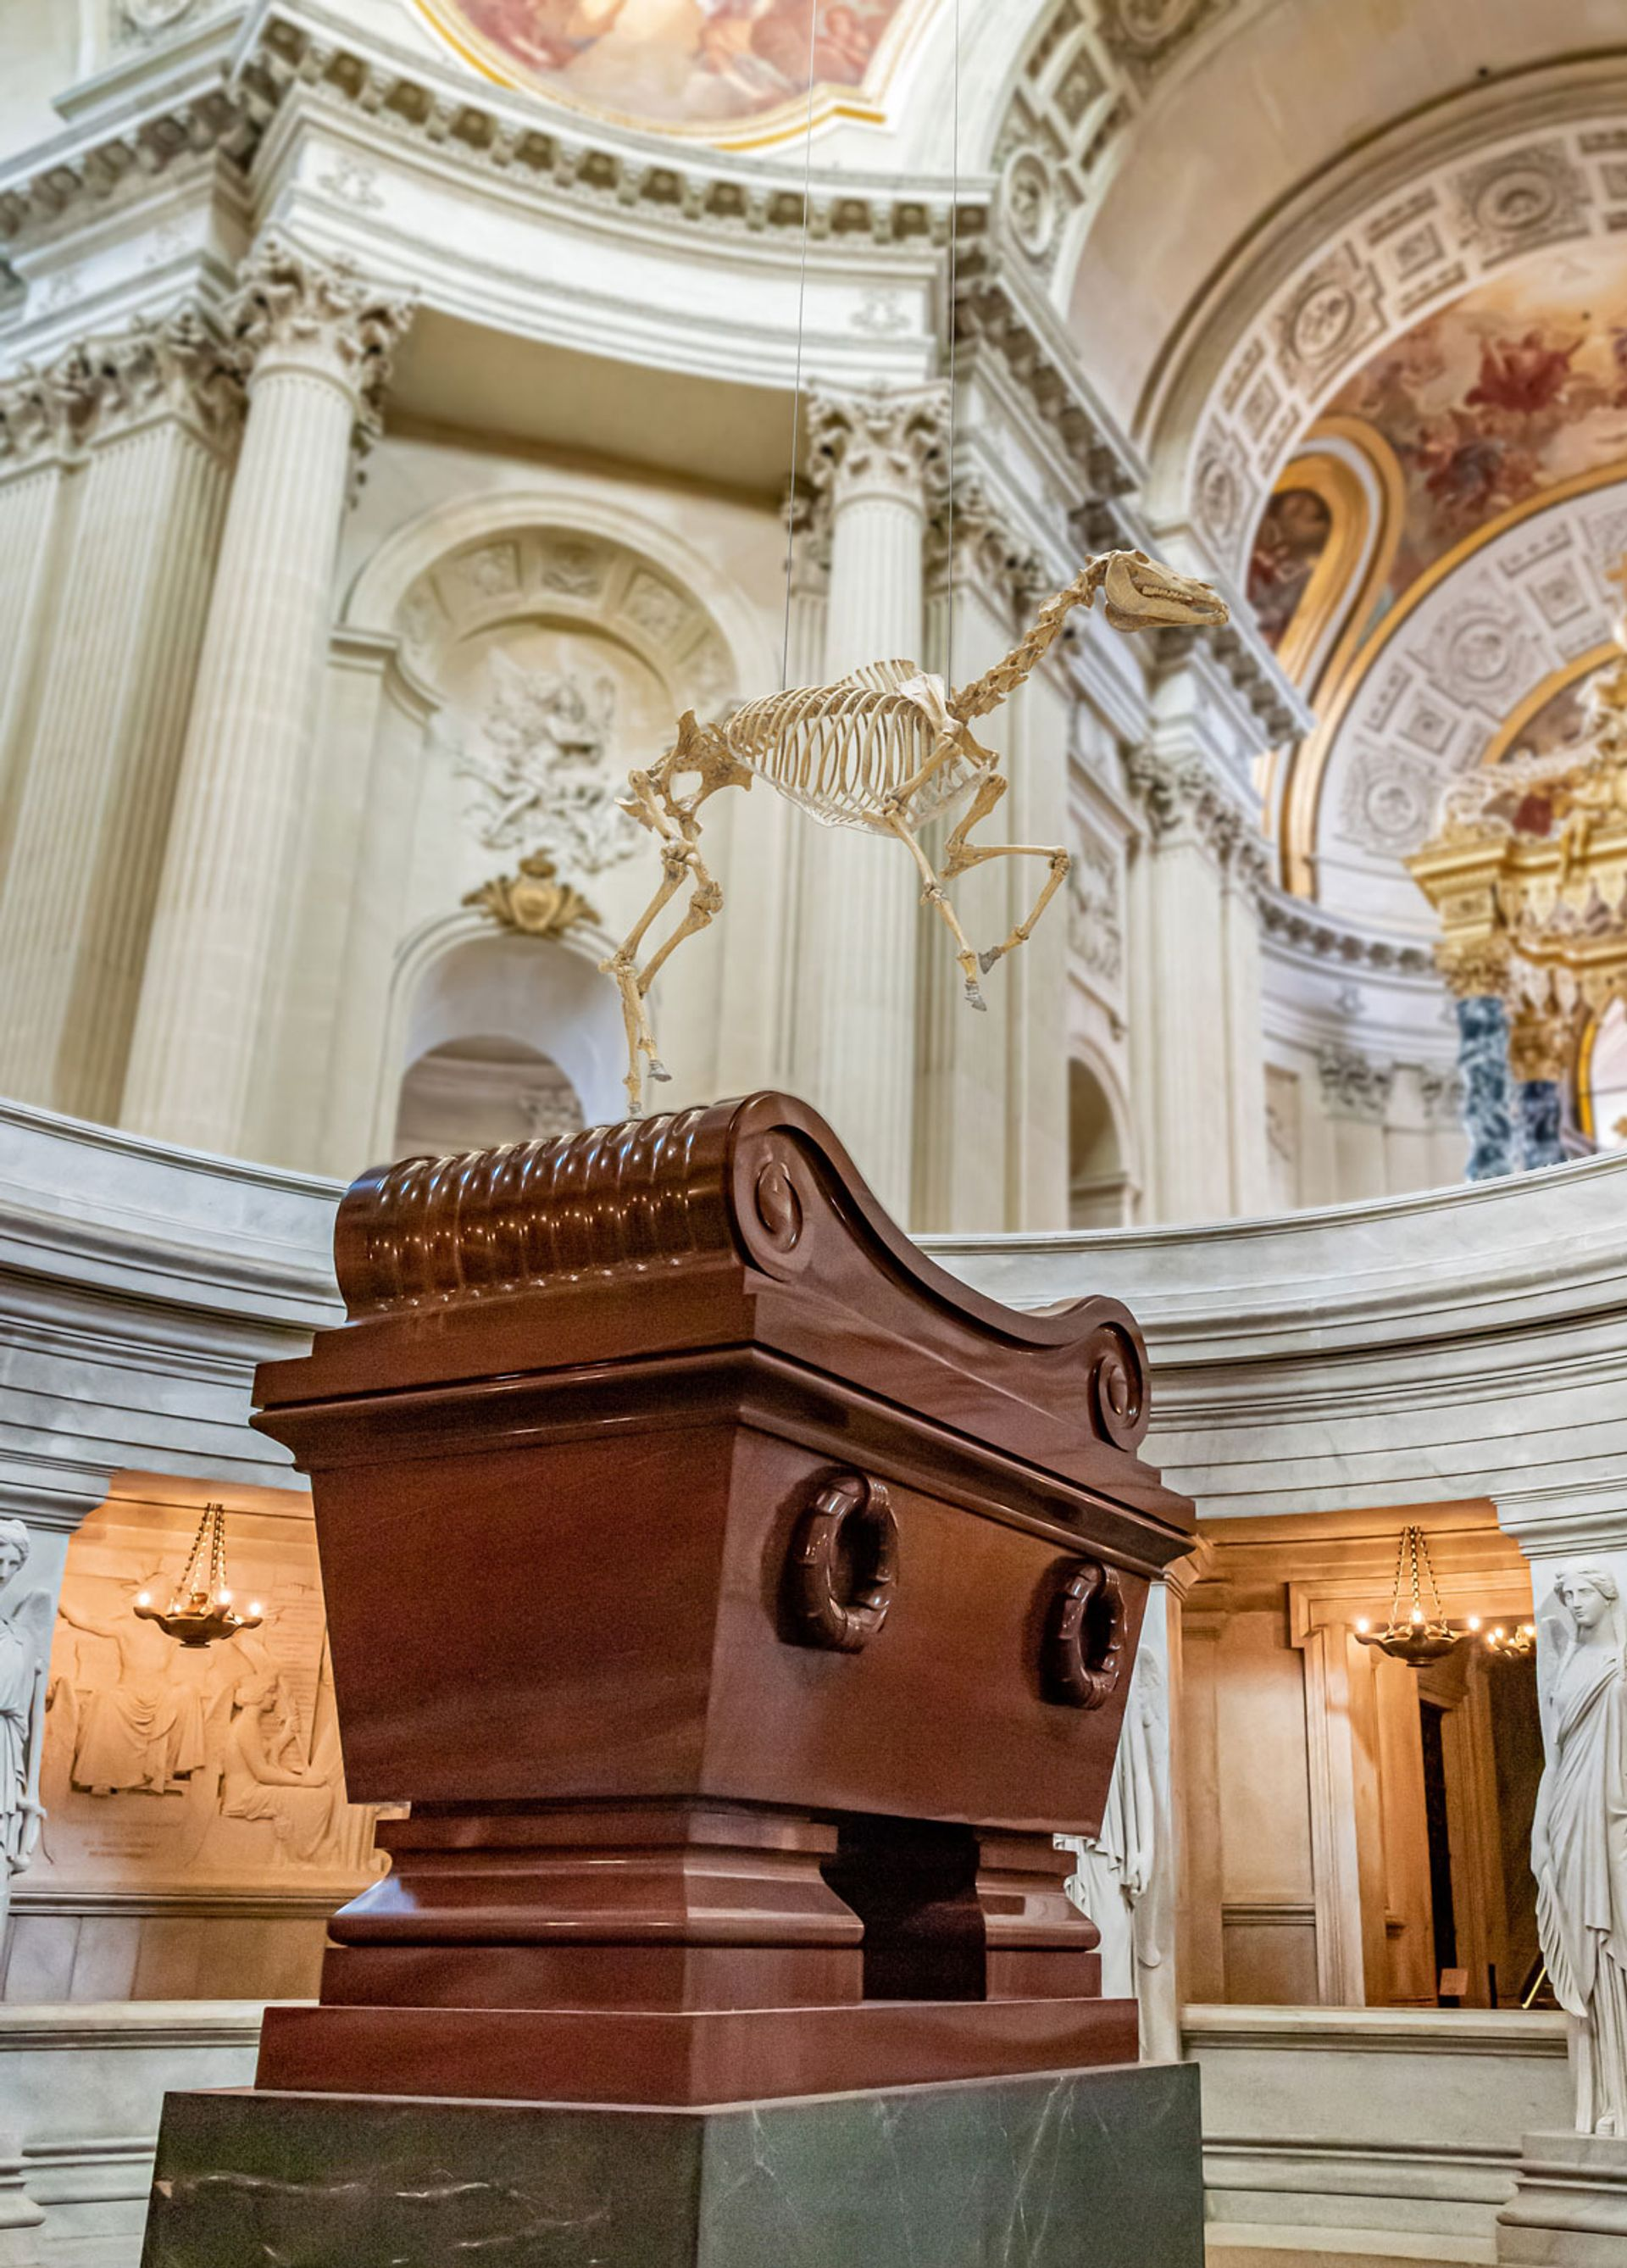 Will the new work stirrup trouble? A rendering of Pascal Convert's sculpture Memento Marengo above the tomb of Napoleon Bonaparte Courtesy of Pascal Convert